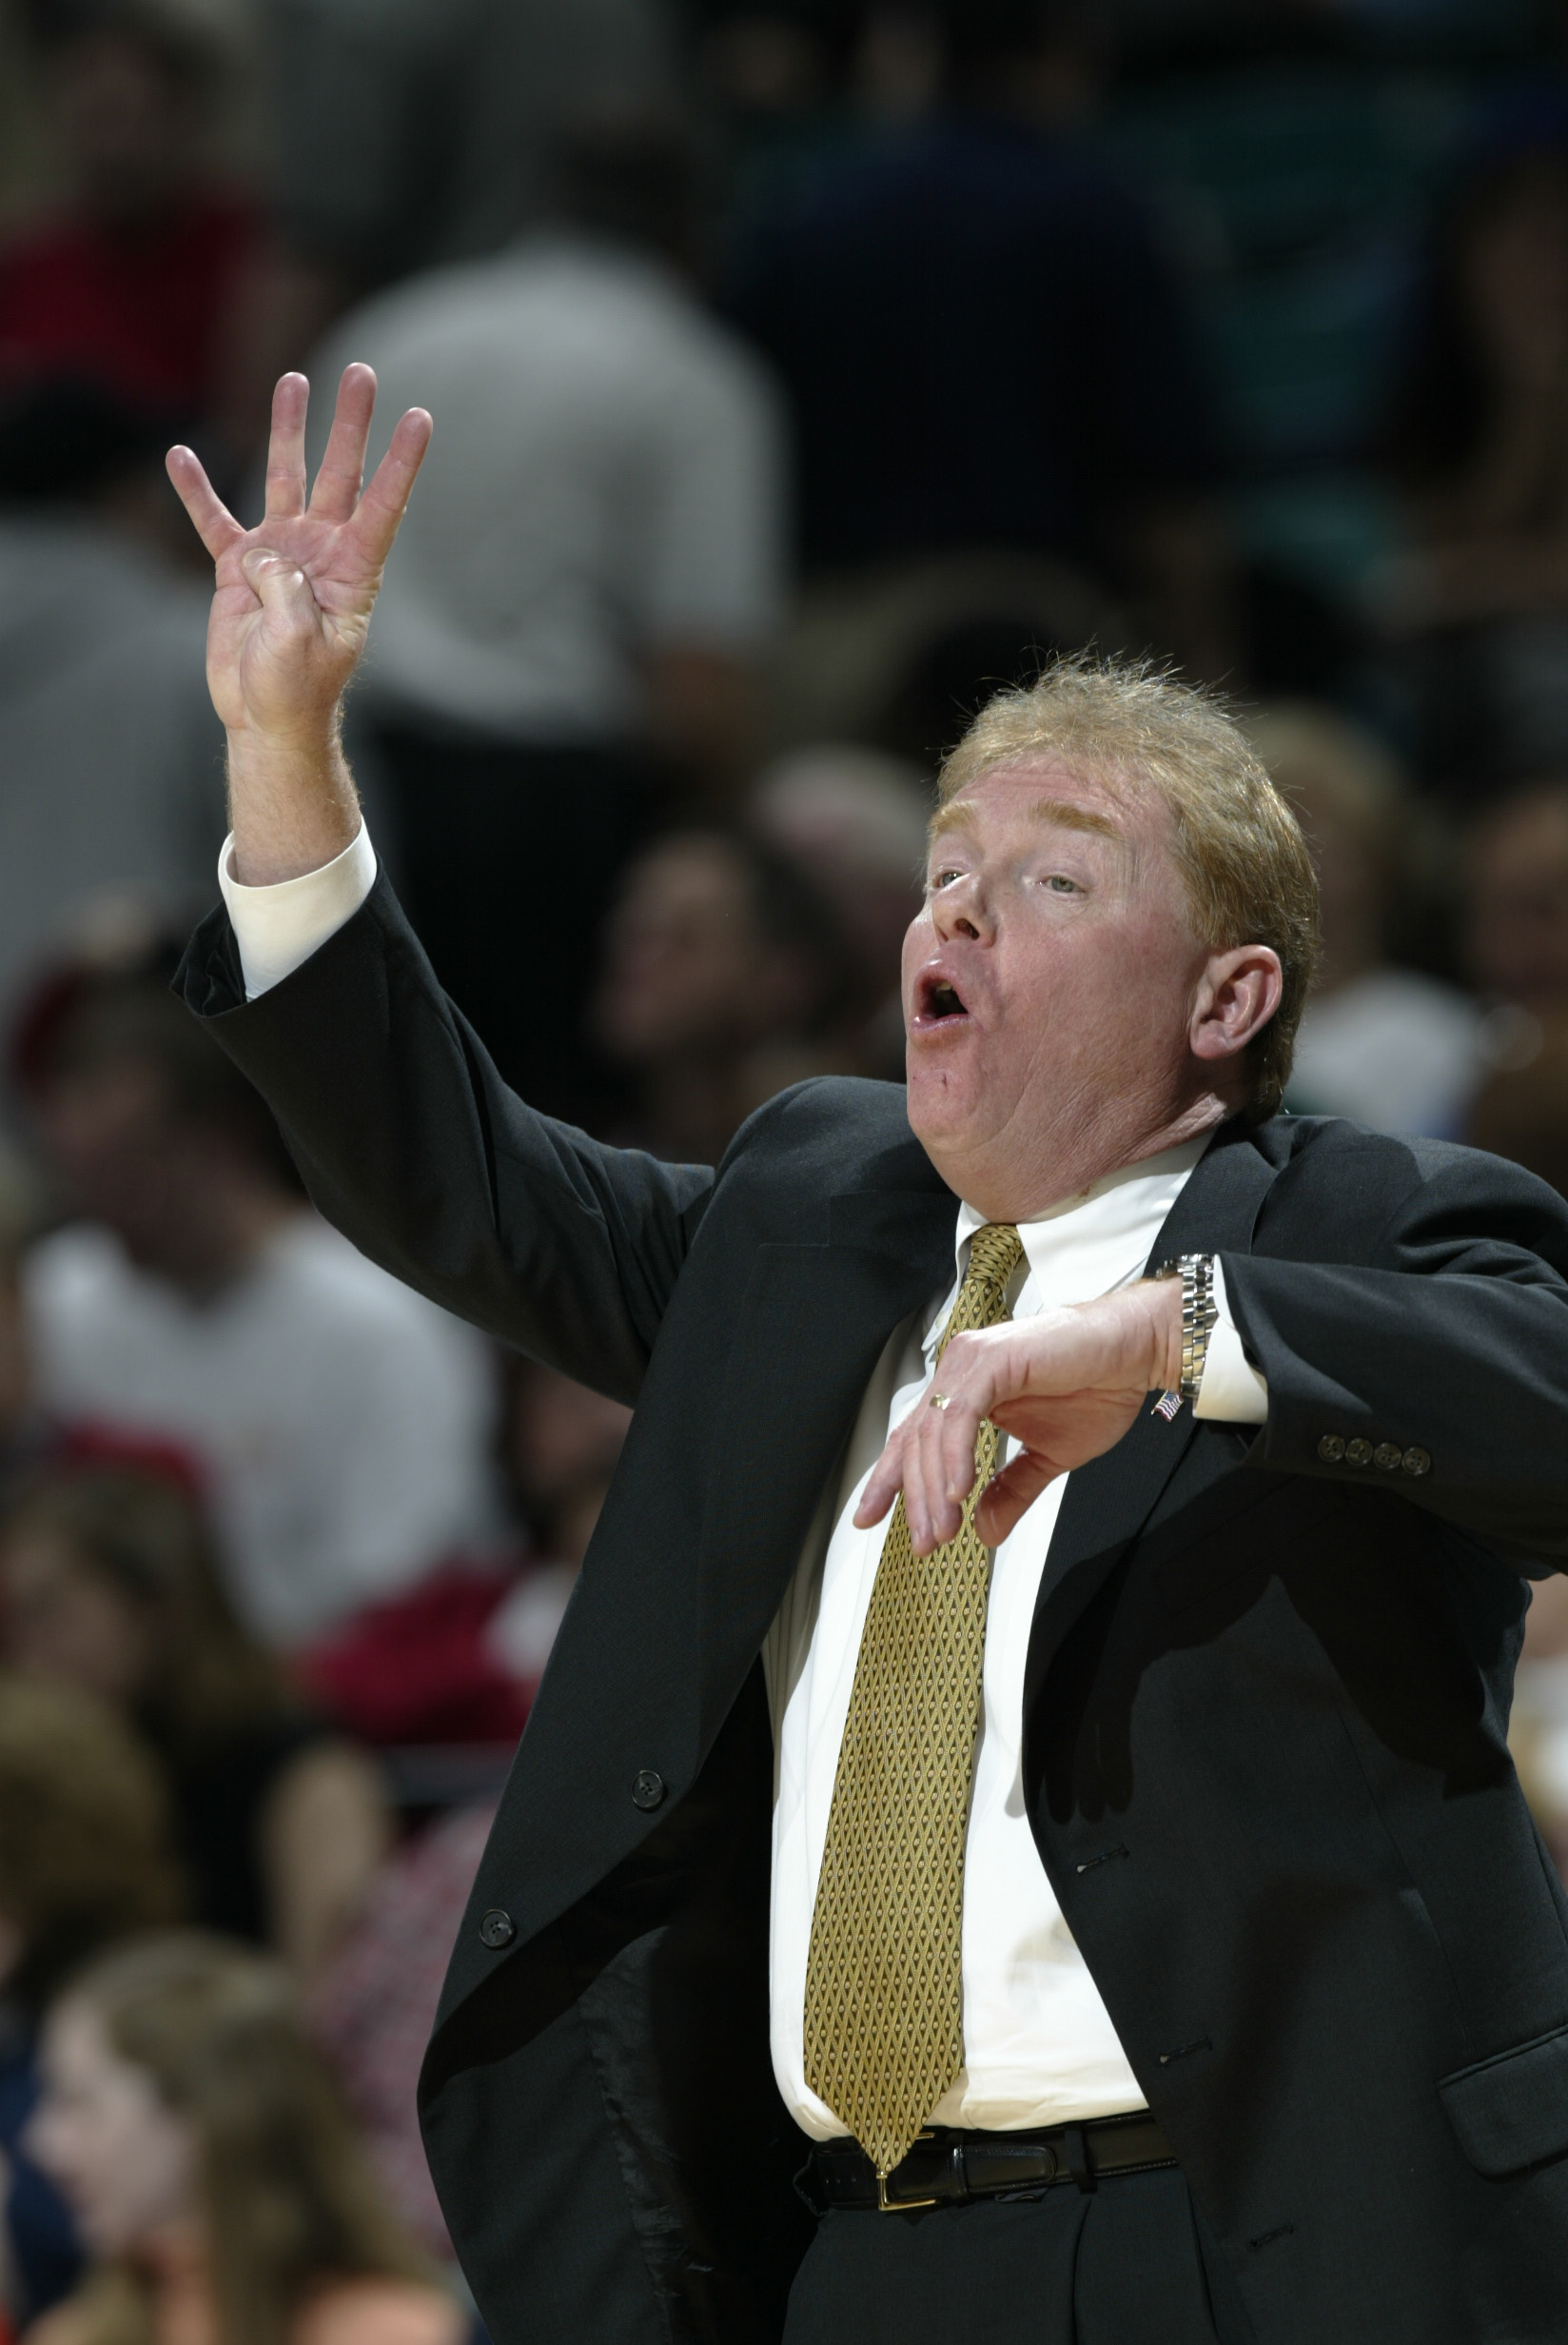 08 Mar 2002:  Head coach  Skip Prosser of Wake Forest directs the team during the ACC Tournament game against Georgia Tech at the Charlotte Coliseum in Charlotte, North Carolina. Wake Forest won 92-83. DIGITAL IMAGE Mandatory Credit: Craig Jones/Getty Ima